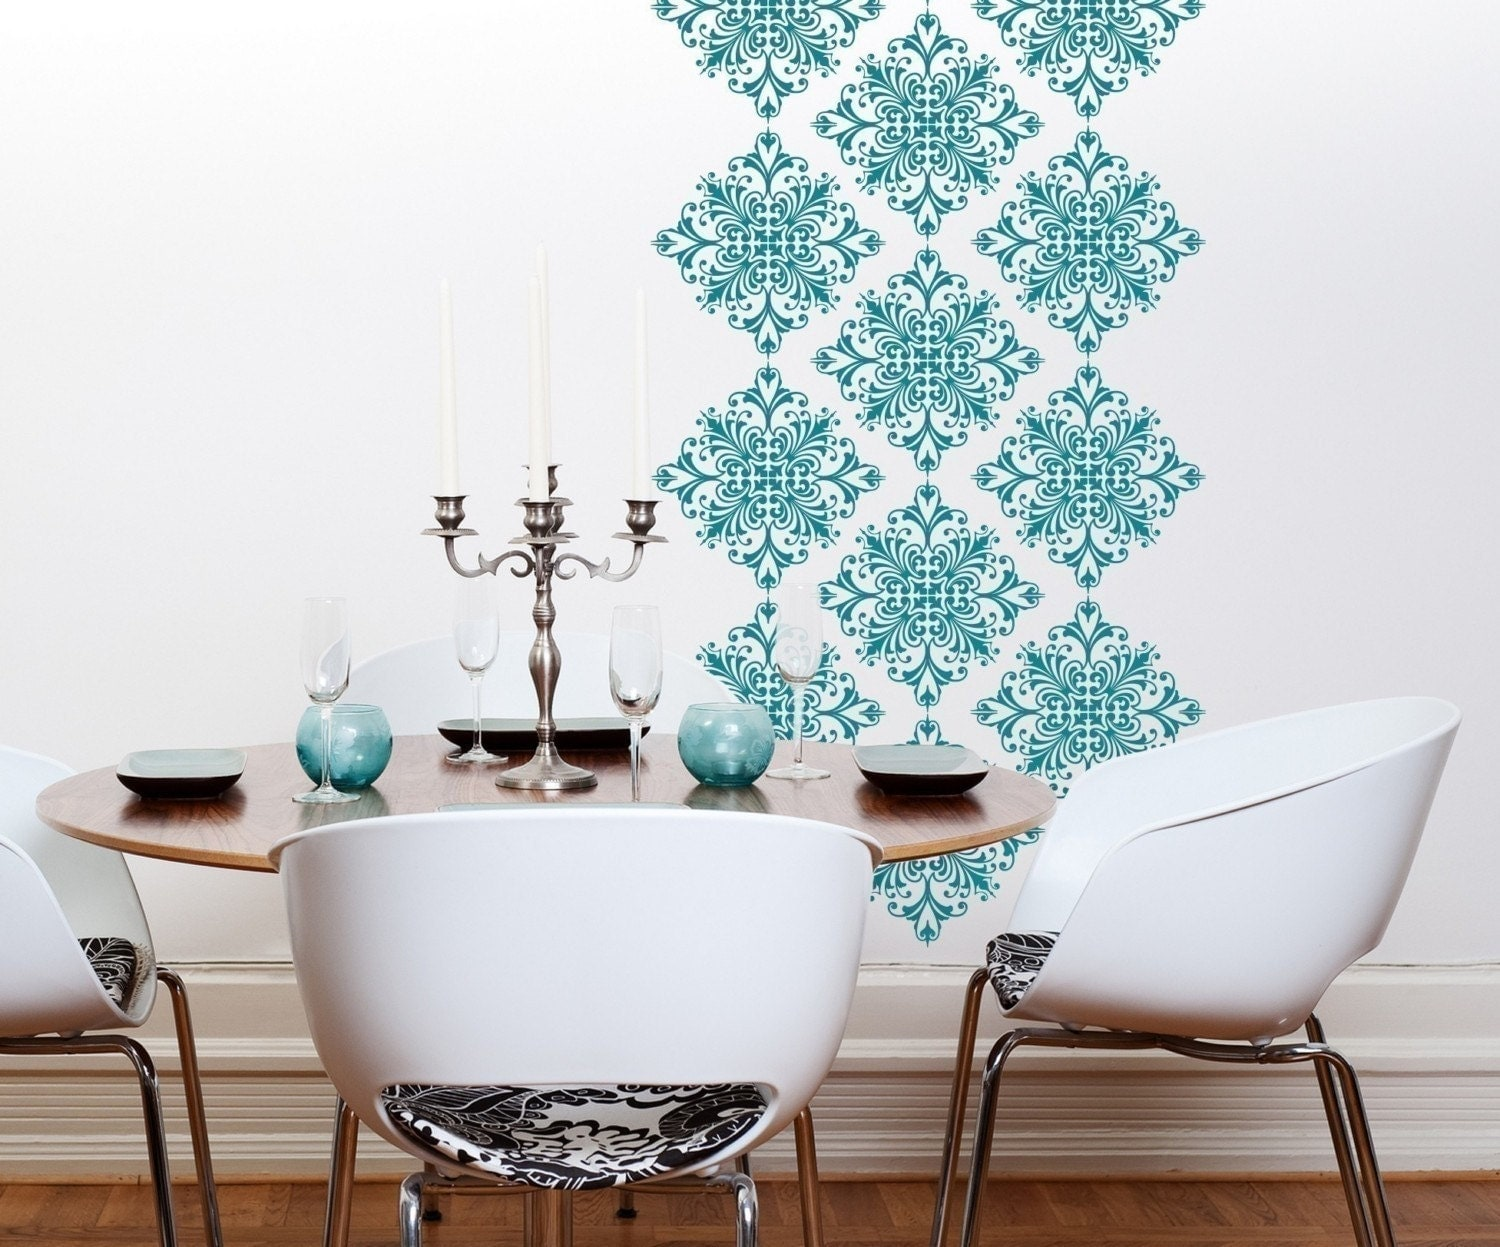 Vinyl wall decals scroll damask wall pattern 18 graphics for Vinyl wallpaper for walls